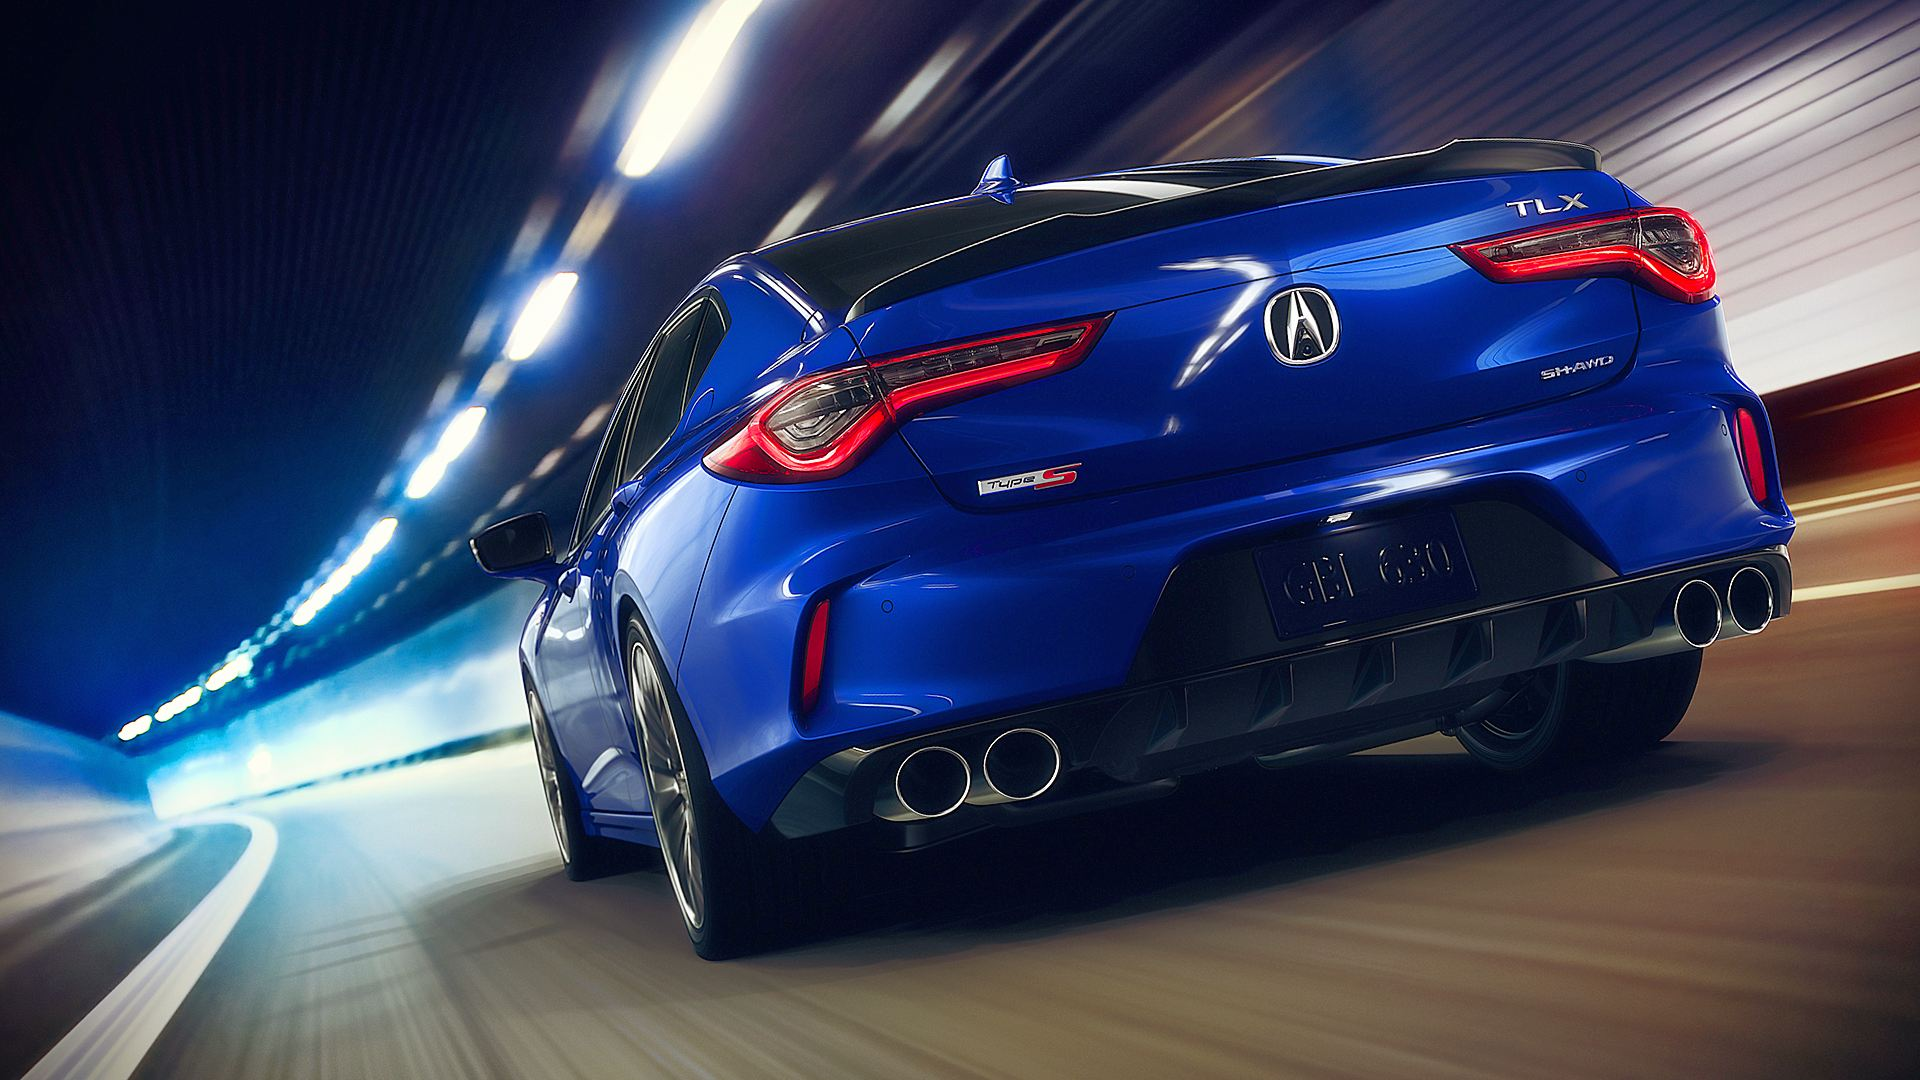 2021 Acura TLX Type S Wallpaper Images